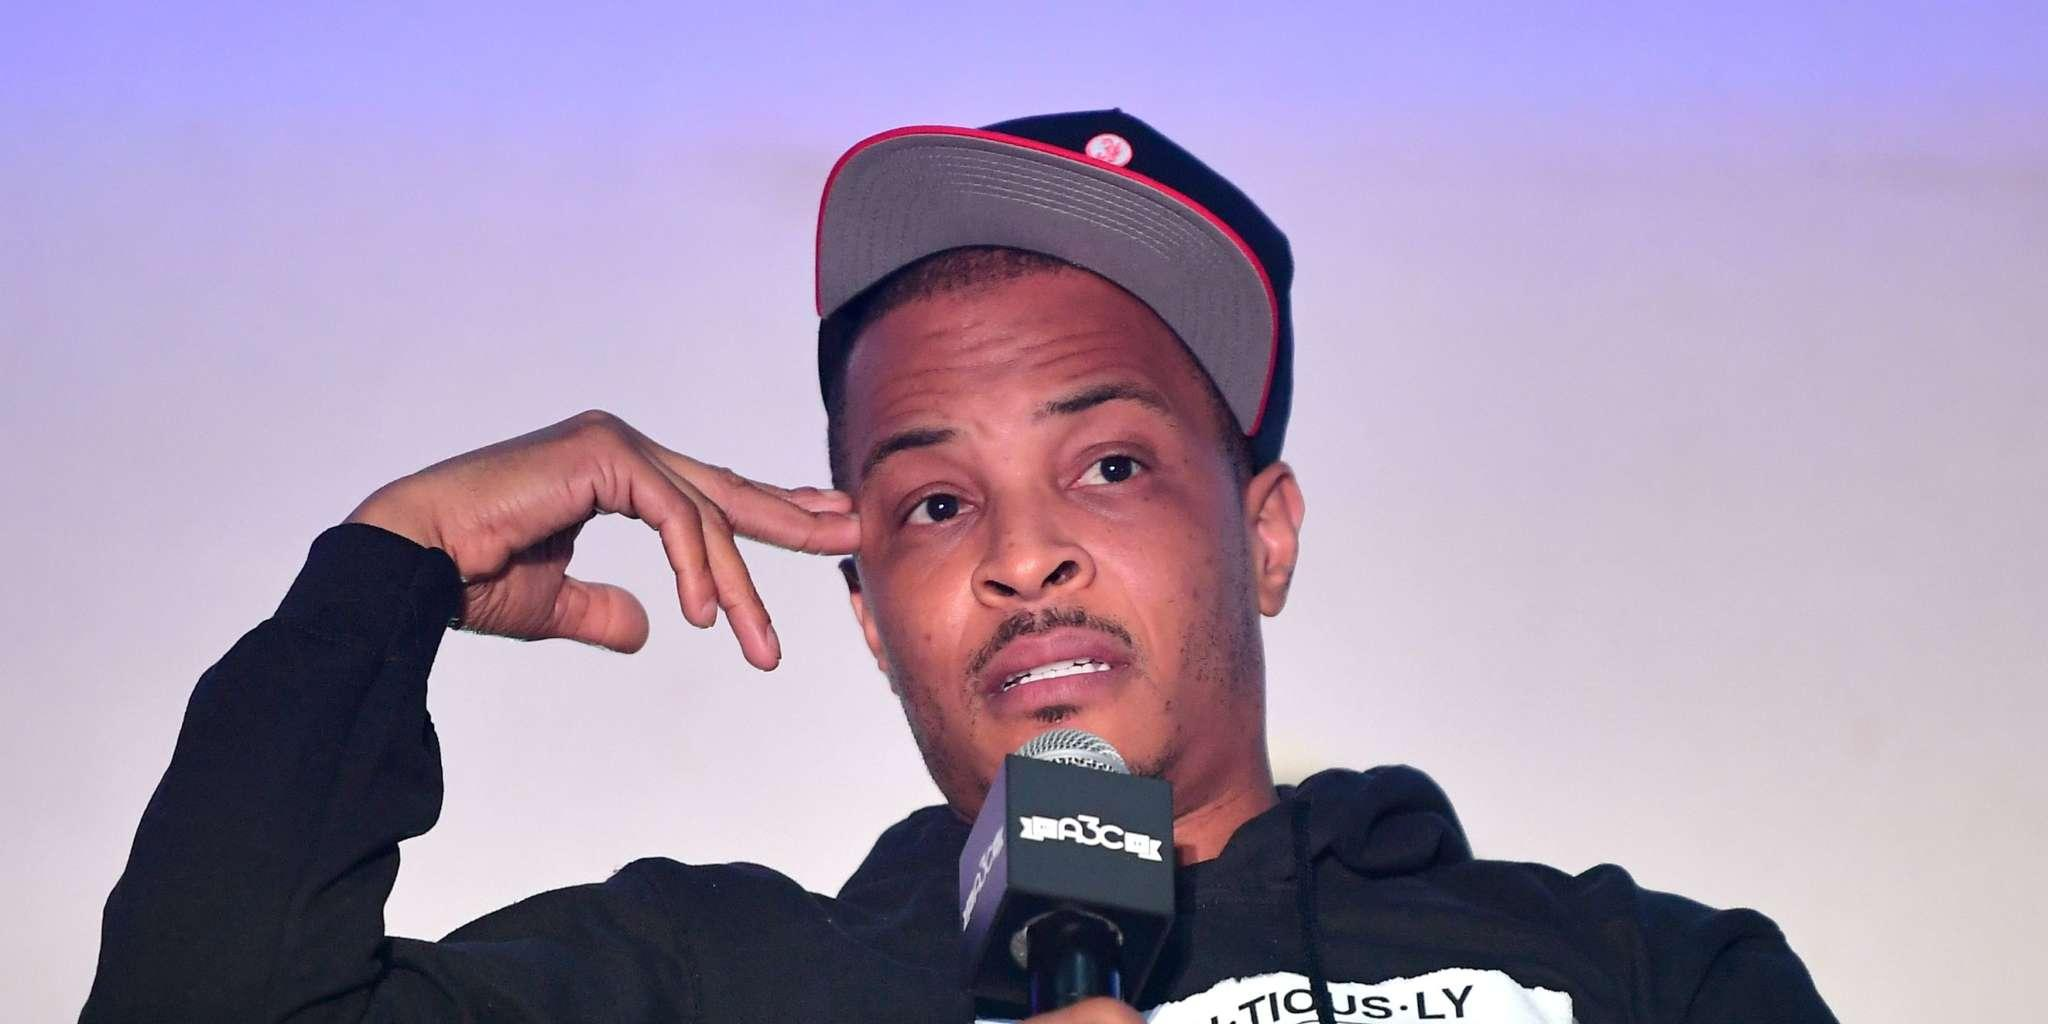 T.I. Reveals His Secret Family And Fans Co Grazy - Check Out This Mind-Blowing Family Portrait Featuring The Rapper